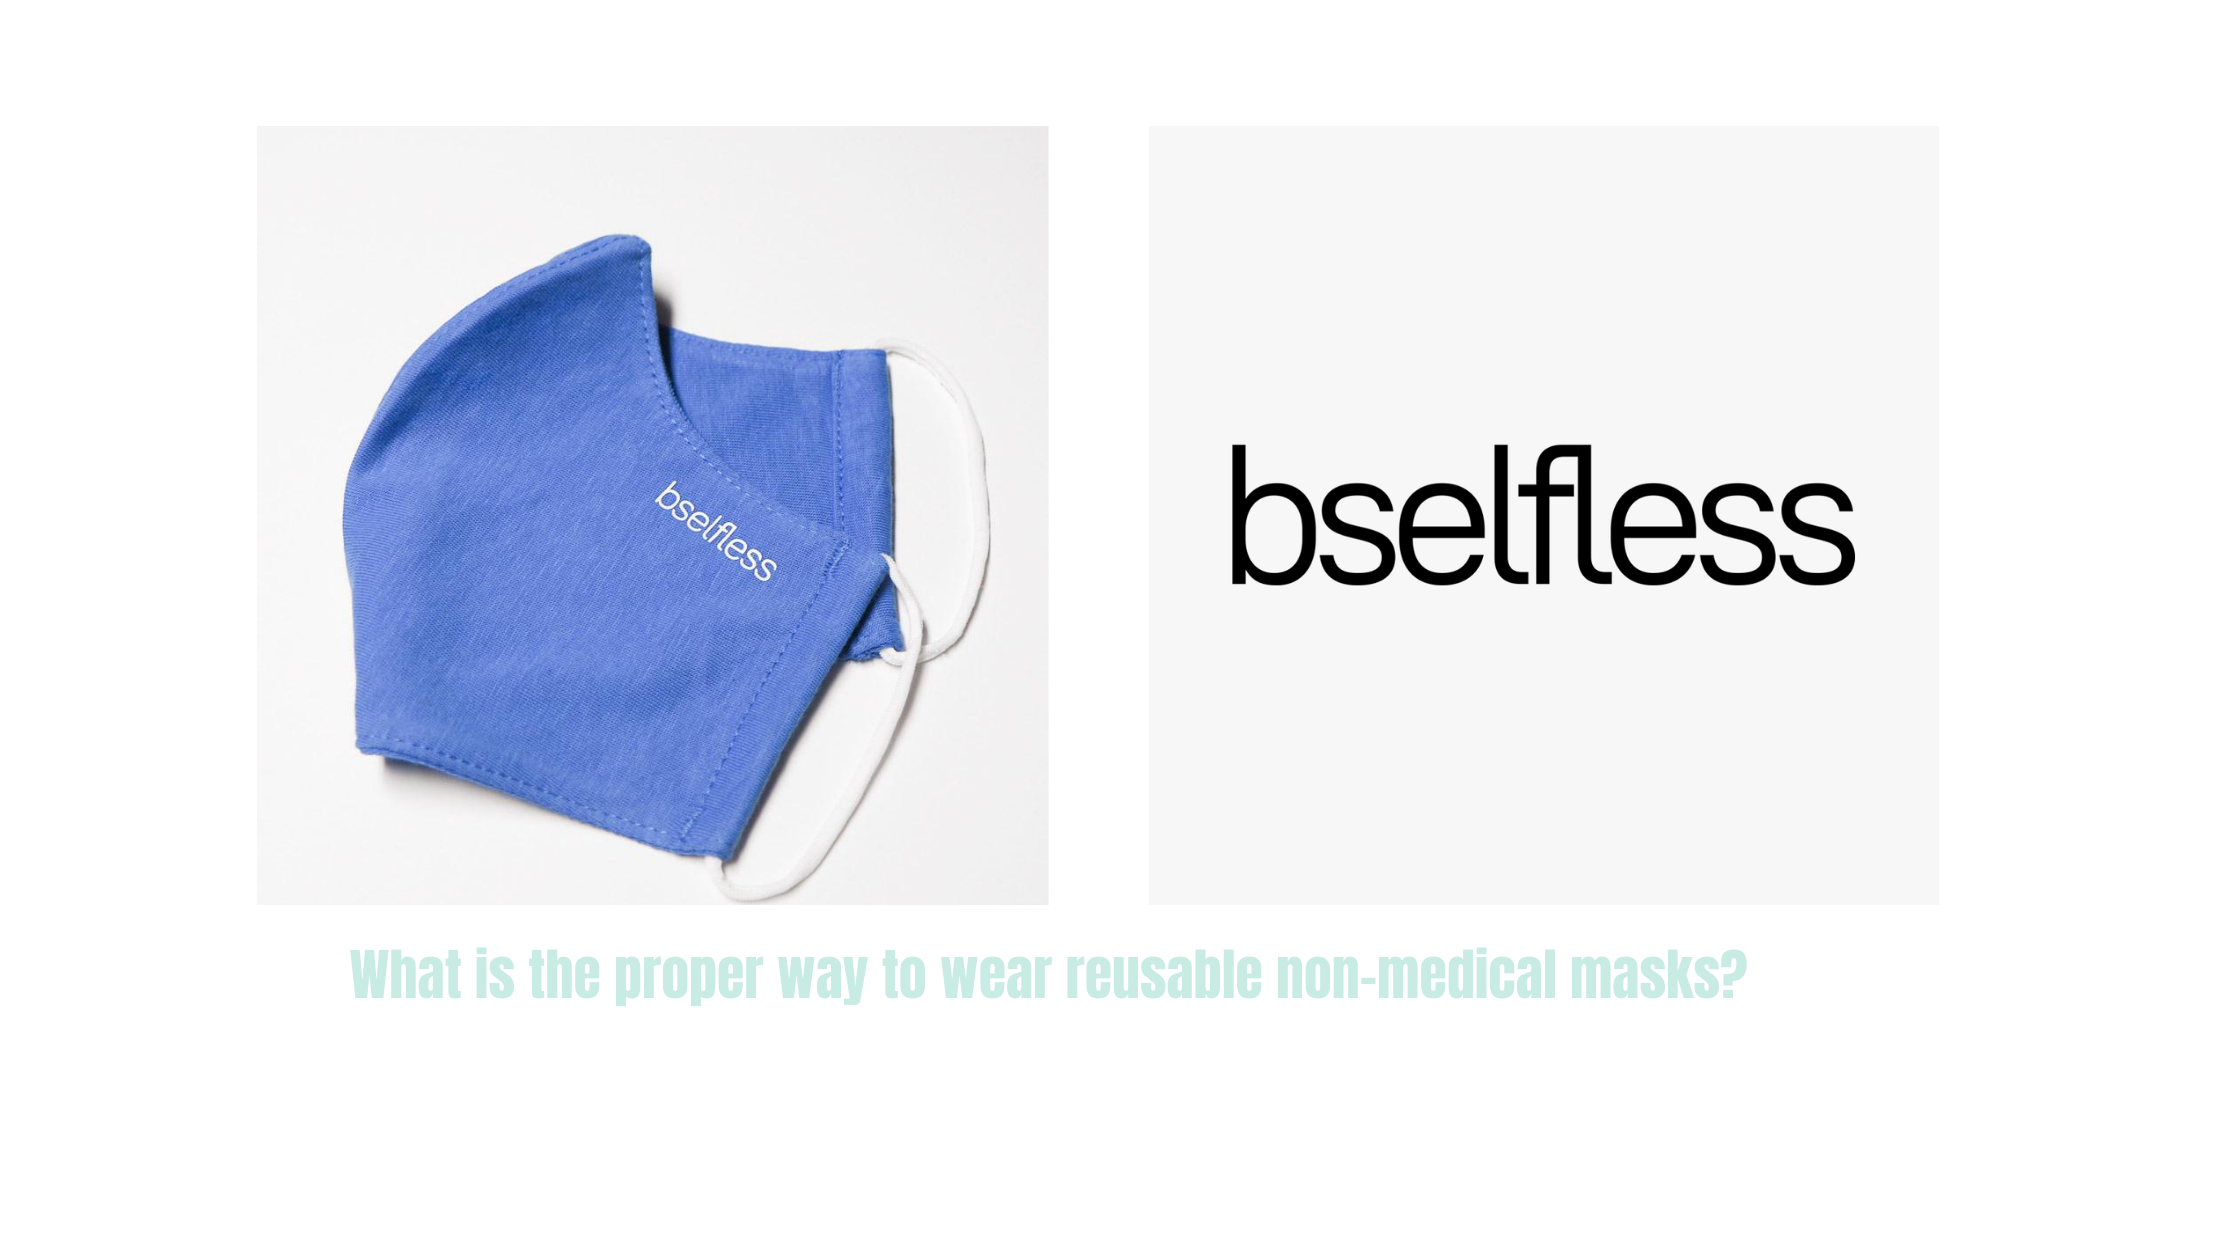 What is the proper way to wear reusable non-medical masks?